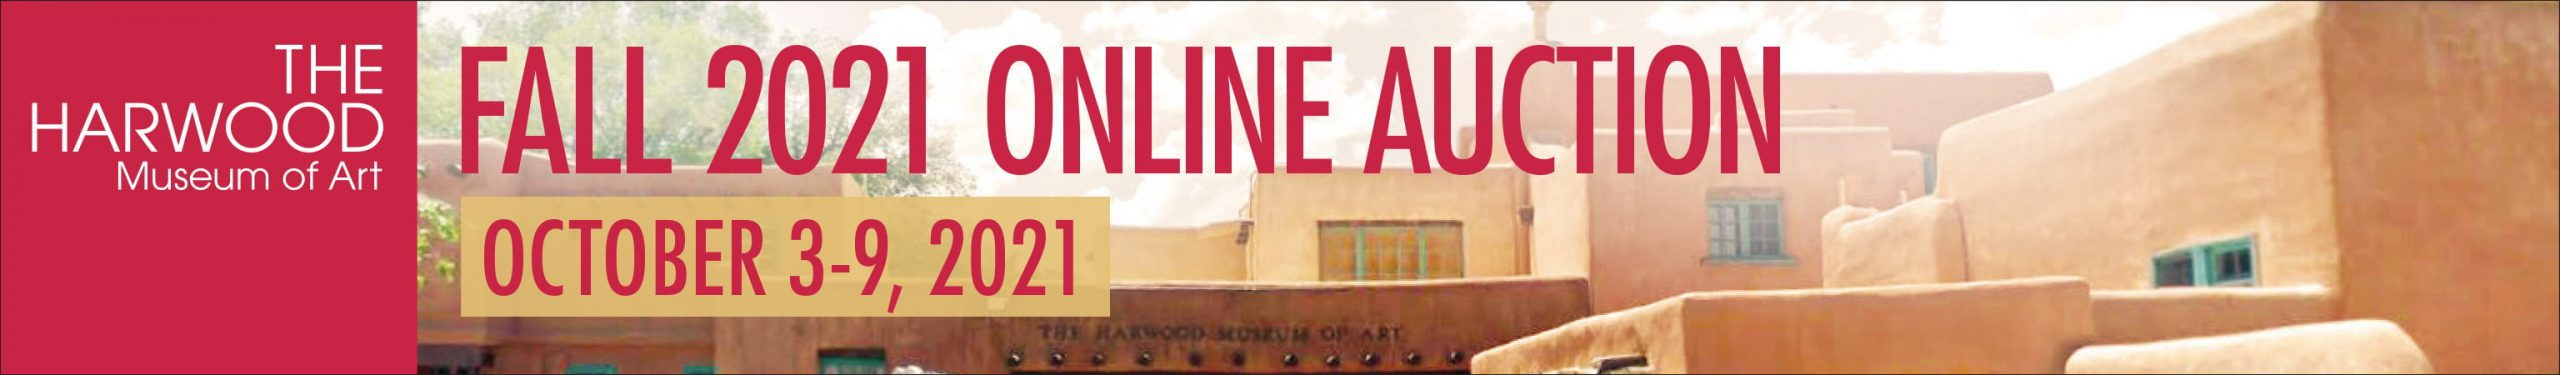 Fall 2021 Online Auction - October 3-9, 2021